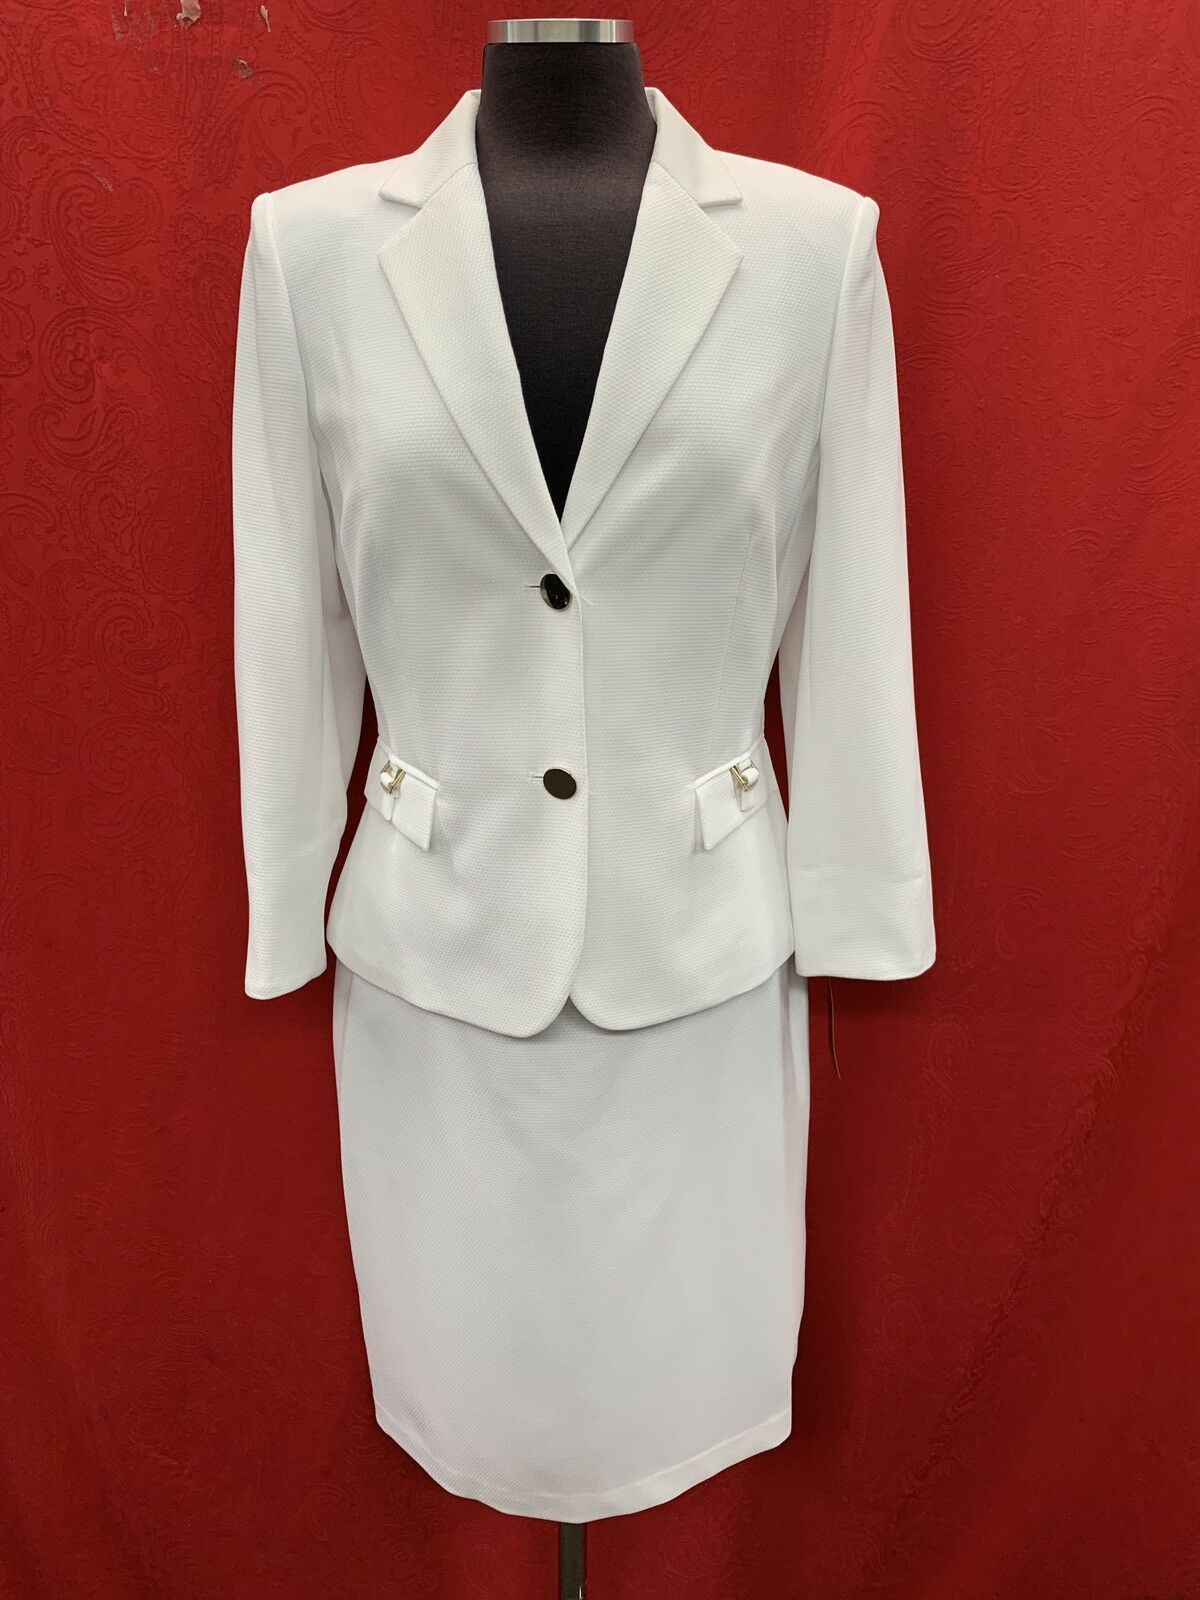 JOHN MEYER SKIRT SUIT WHITE SIZE 18 LINED RETAIL 180 SKIRT LENGTH 24